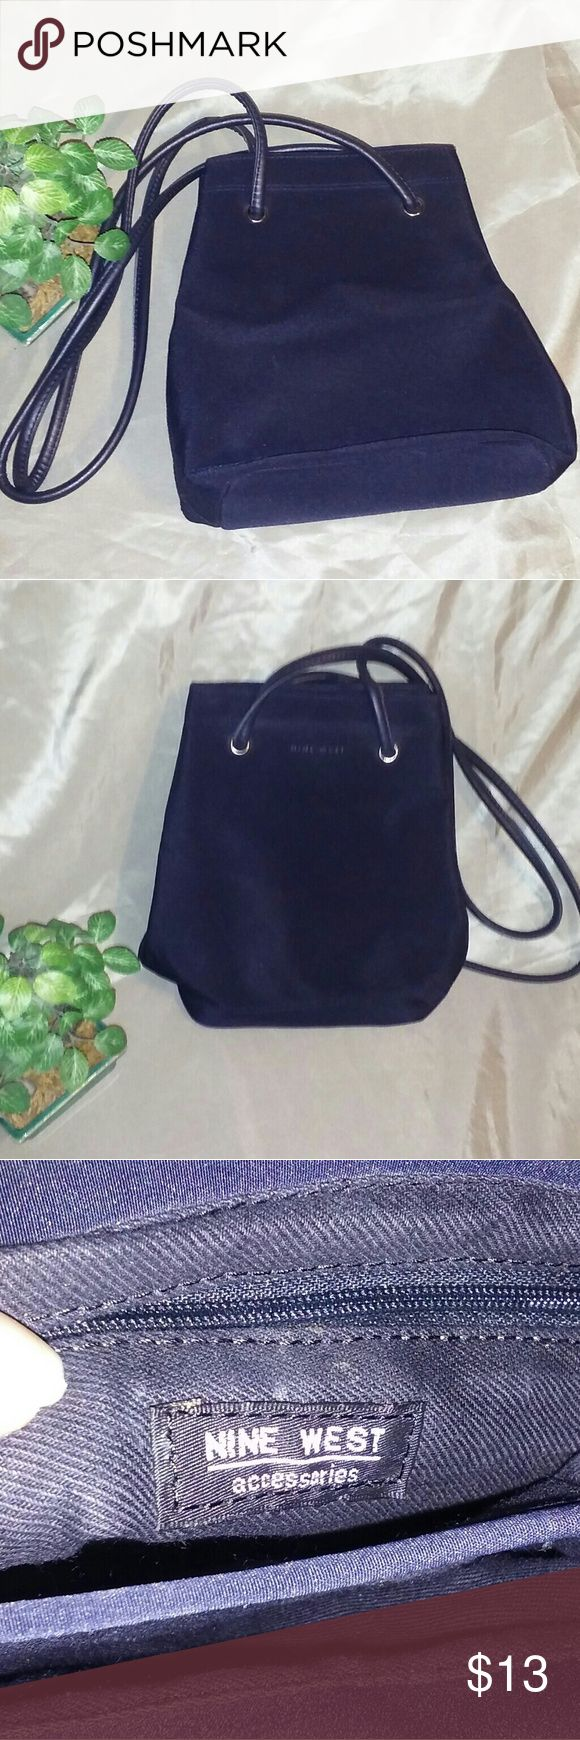 Nine West purse Dark blue Nine West Purse great condition never been used. 7x3x9 Nine West Bags Shoulder Bags